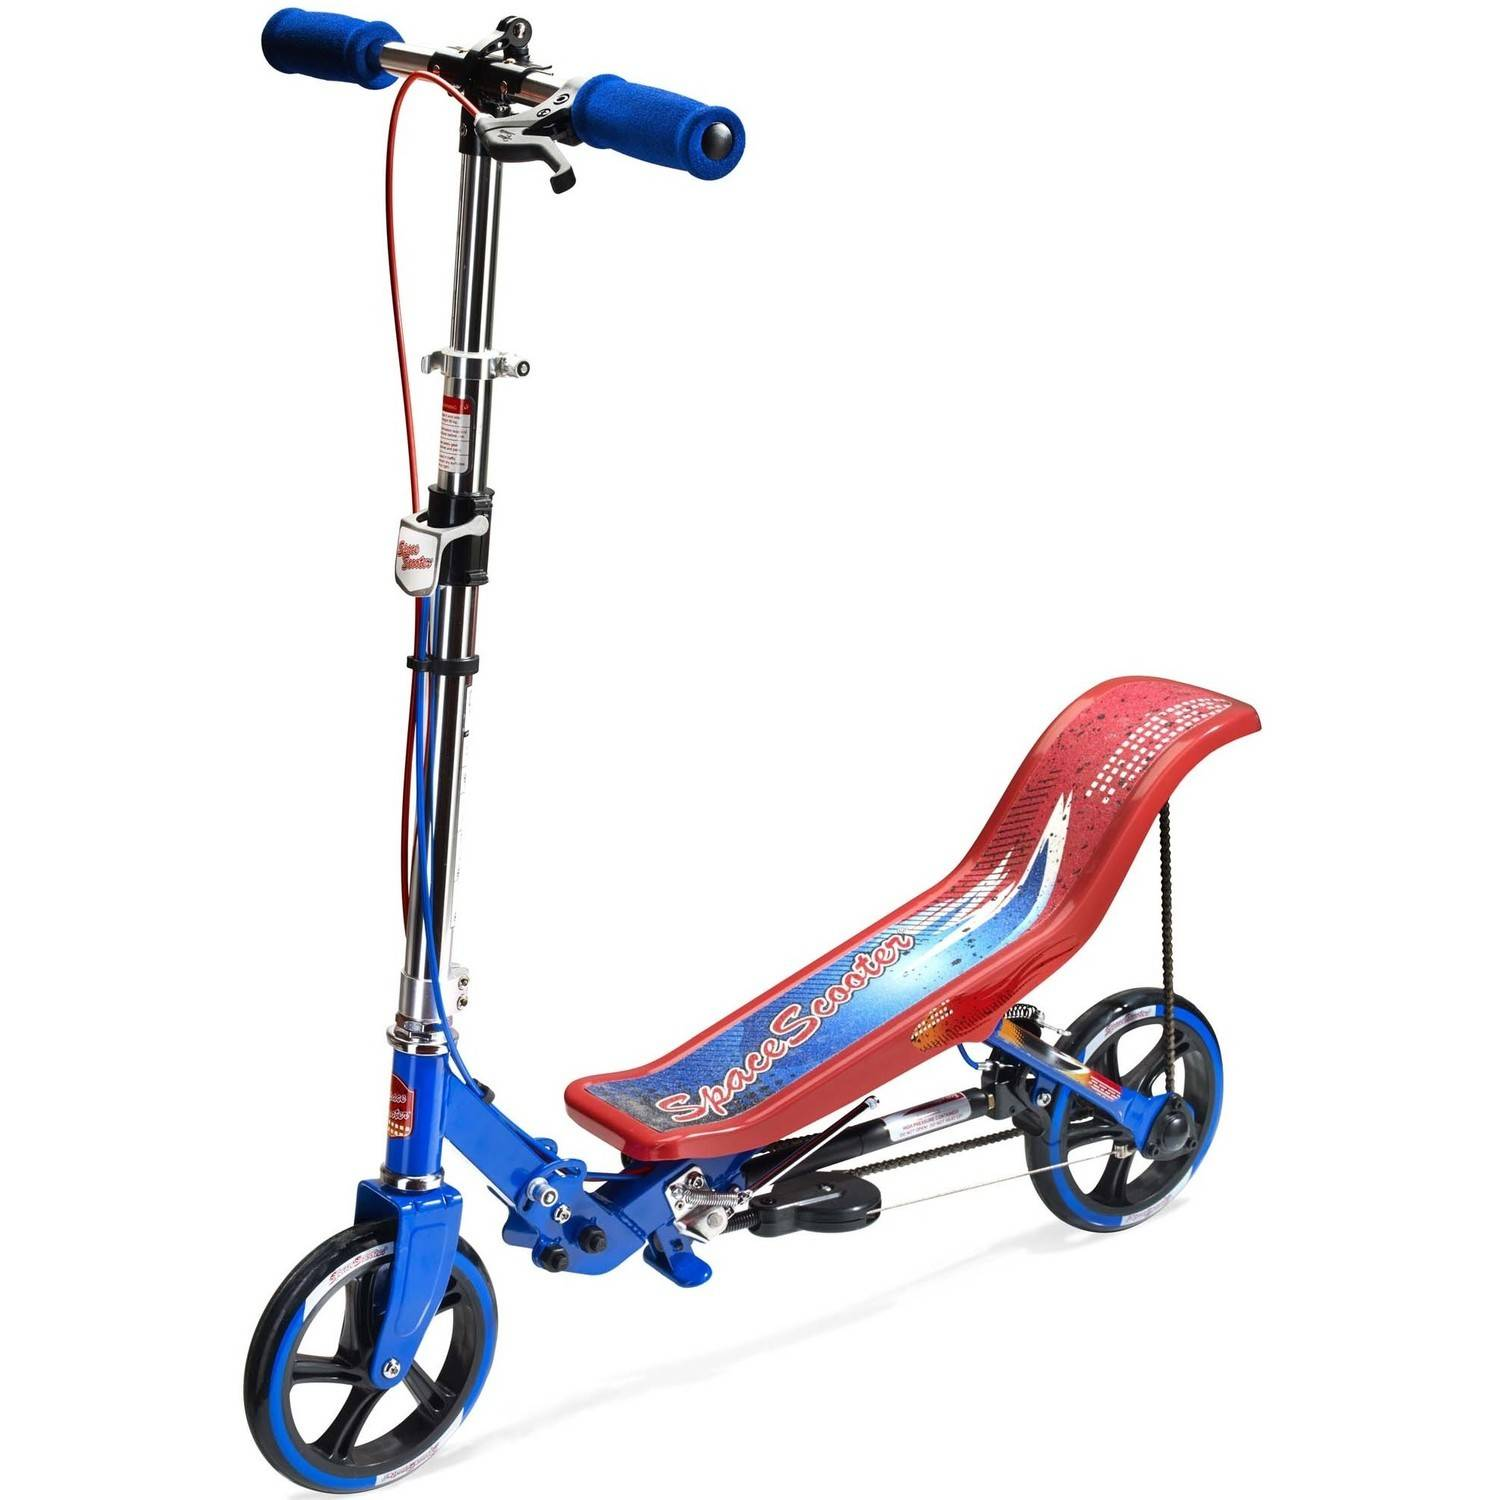 Space Scooter X580, Regular, Red Blue by Space Scooter